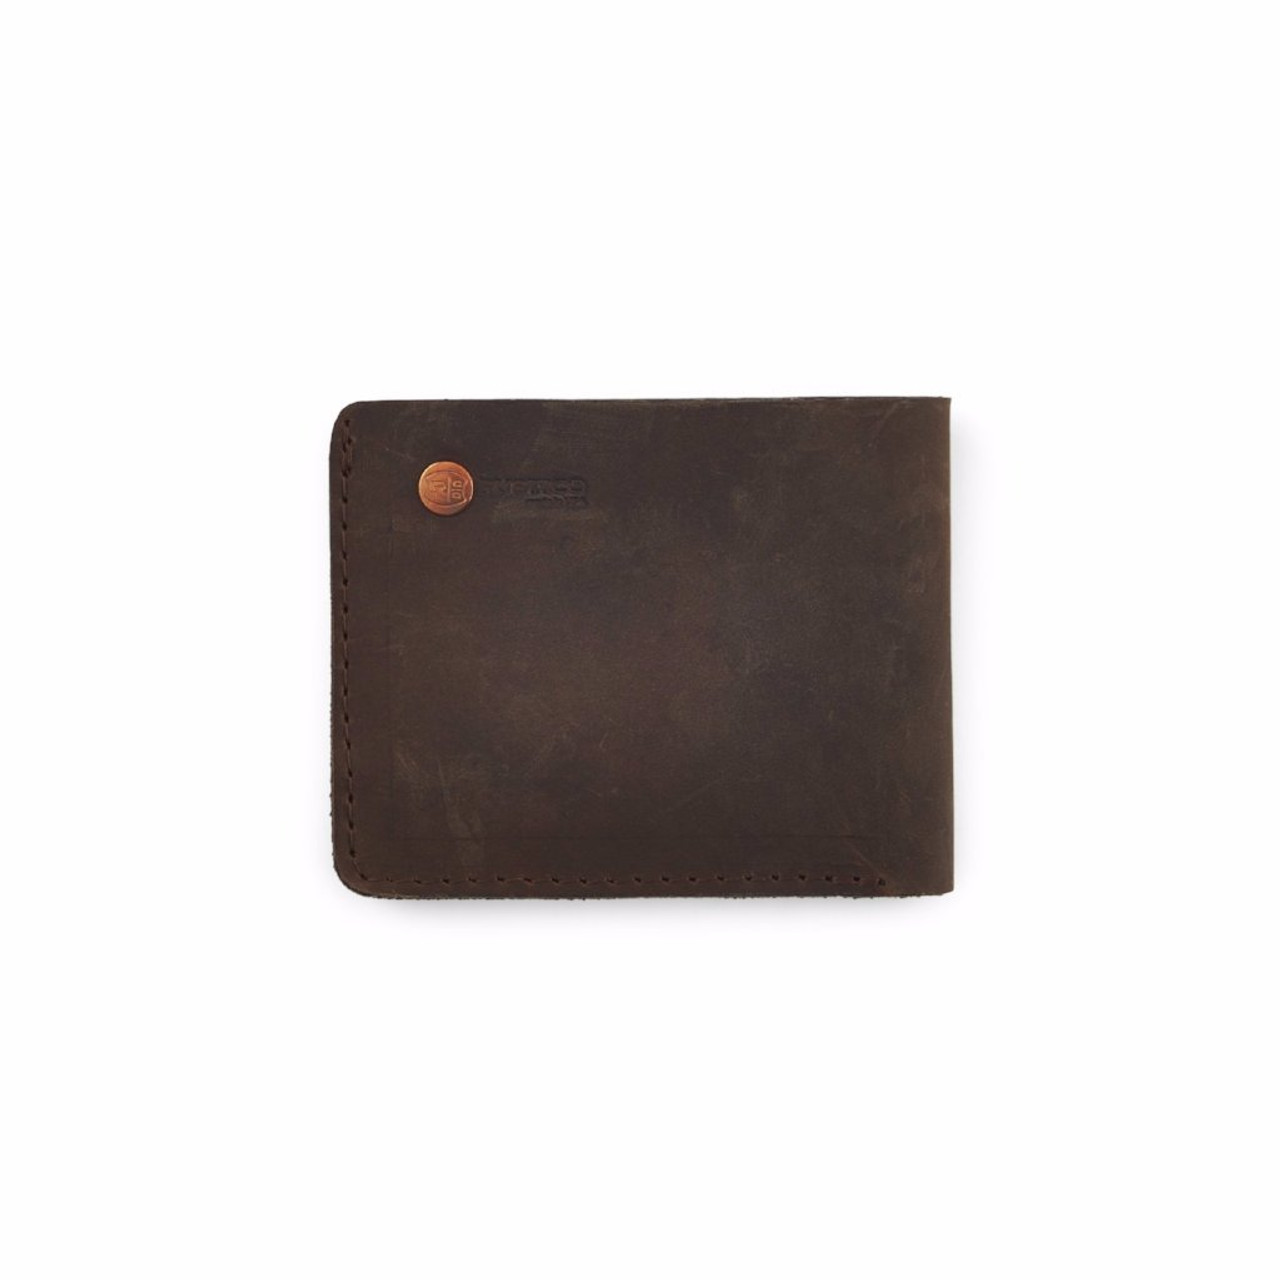 Knox Bifold Leather Wallet - Dark Brown - by Rustico